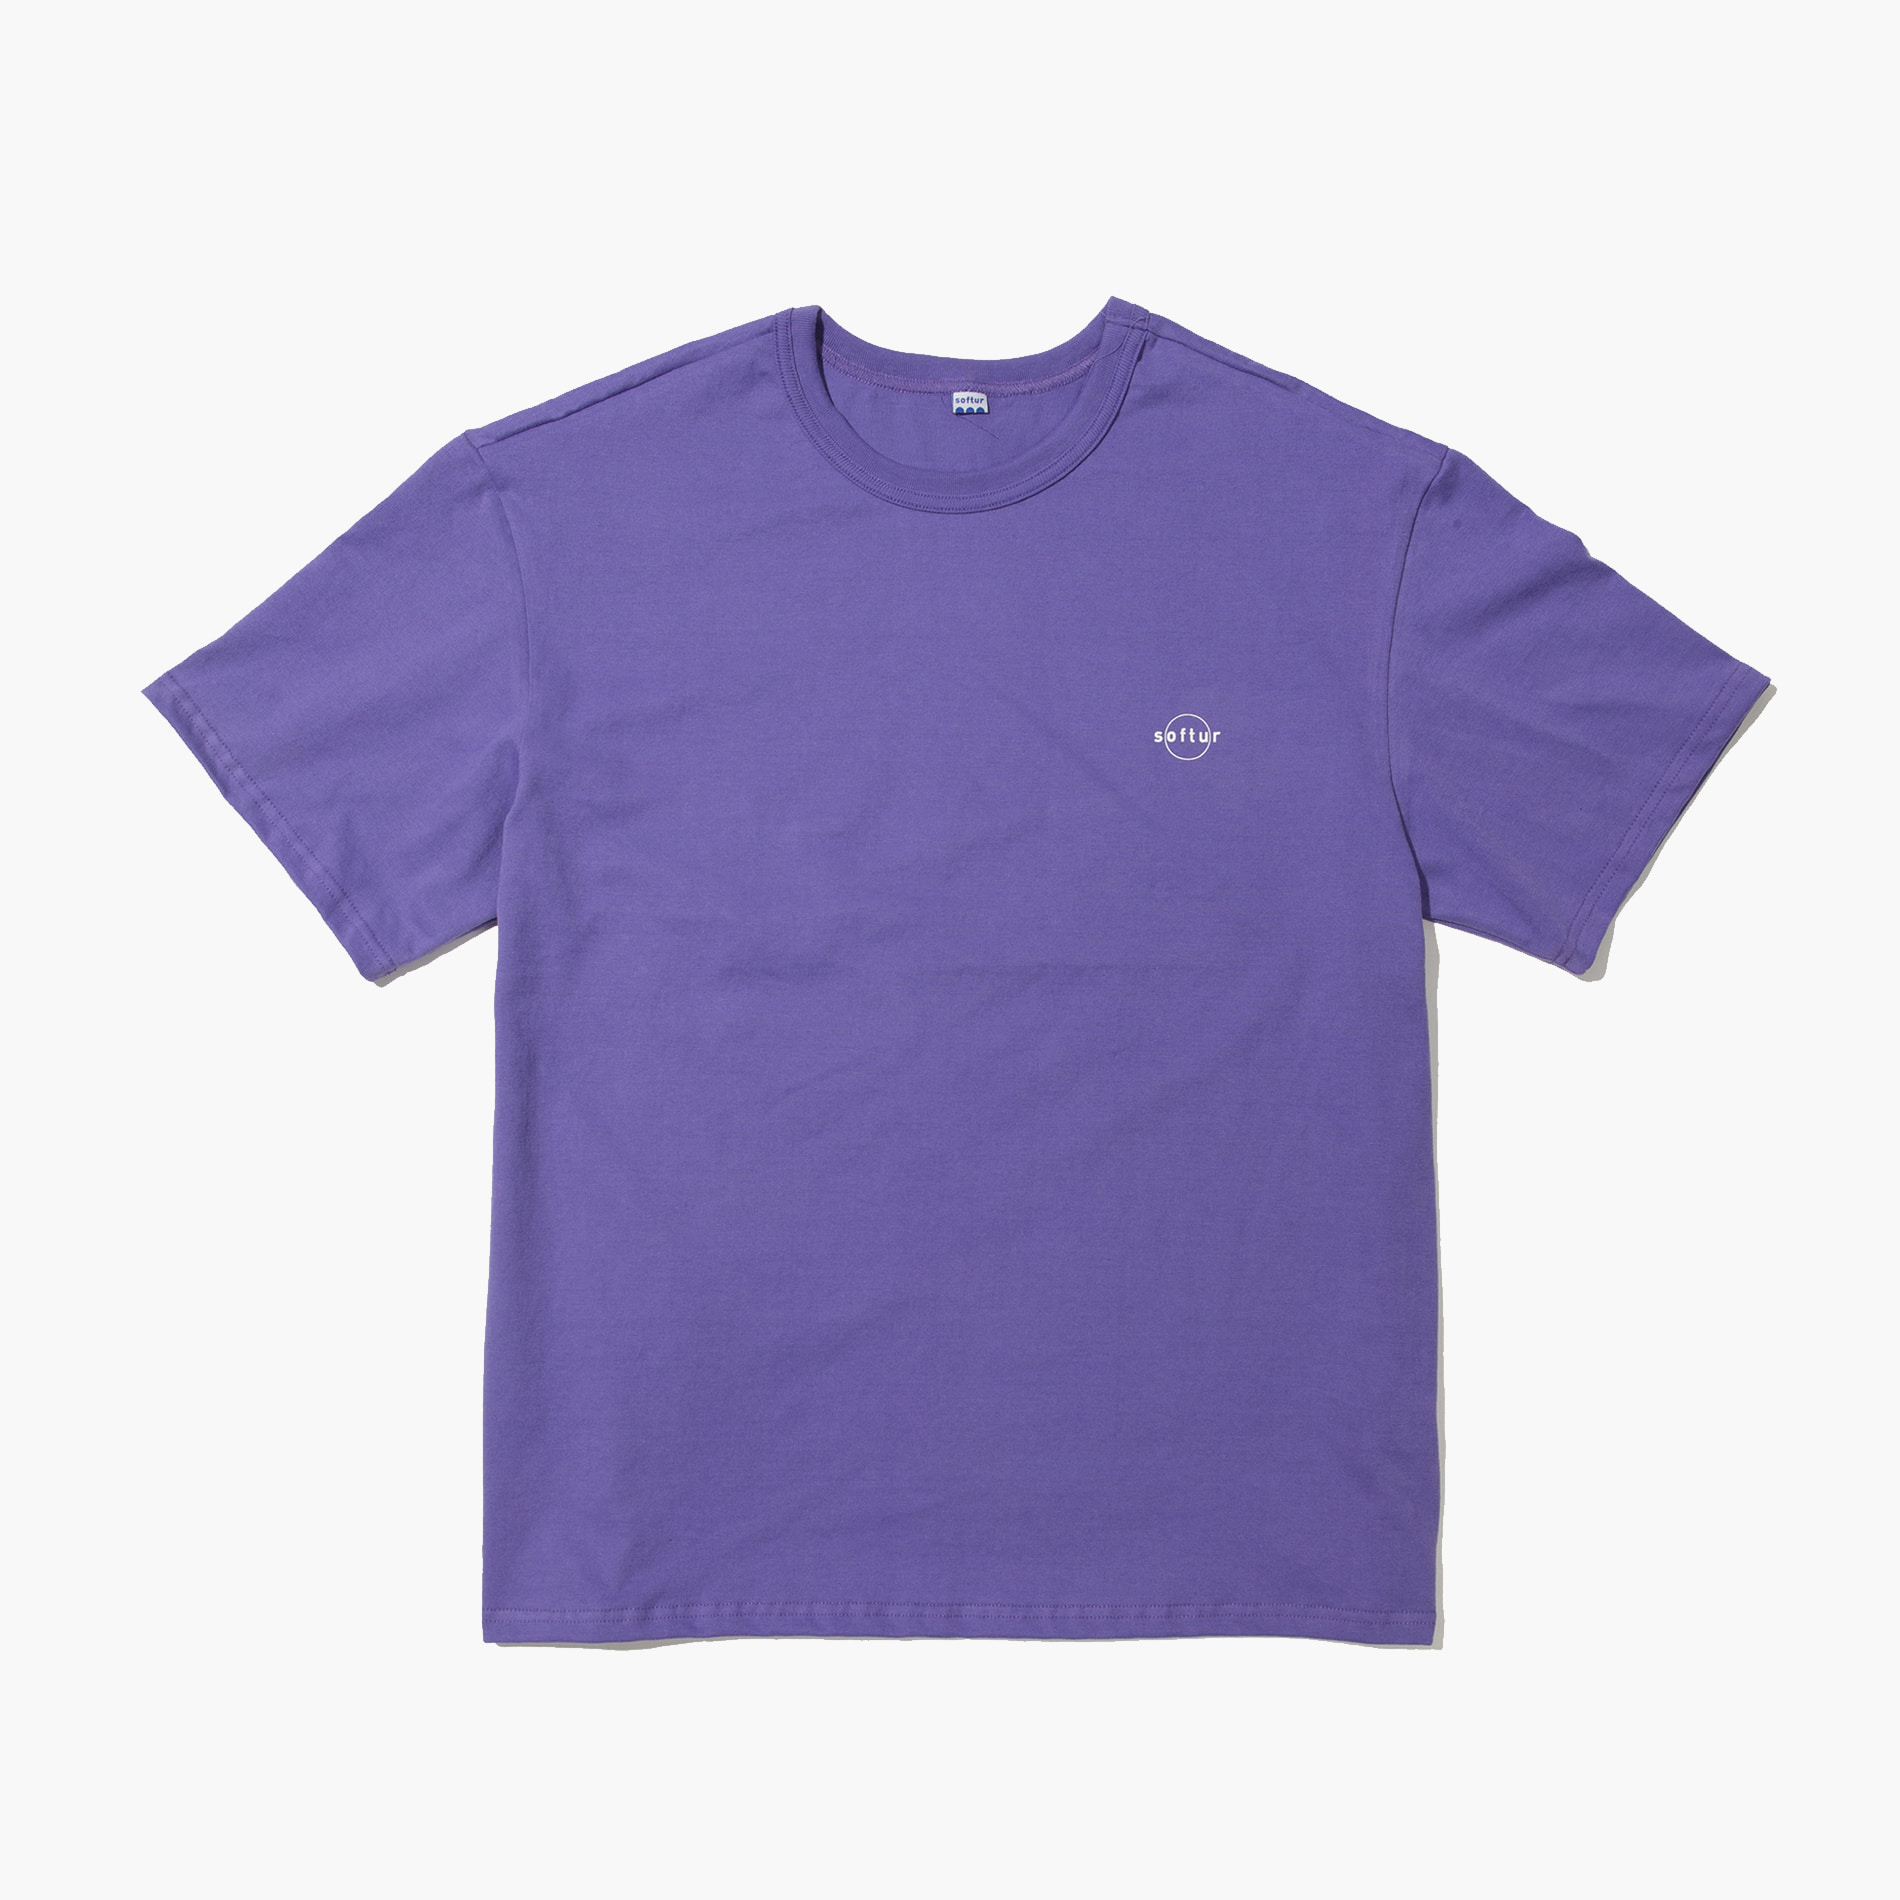 SOFTUR T-SHIRT (PURPLE)